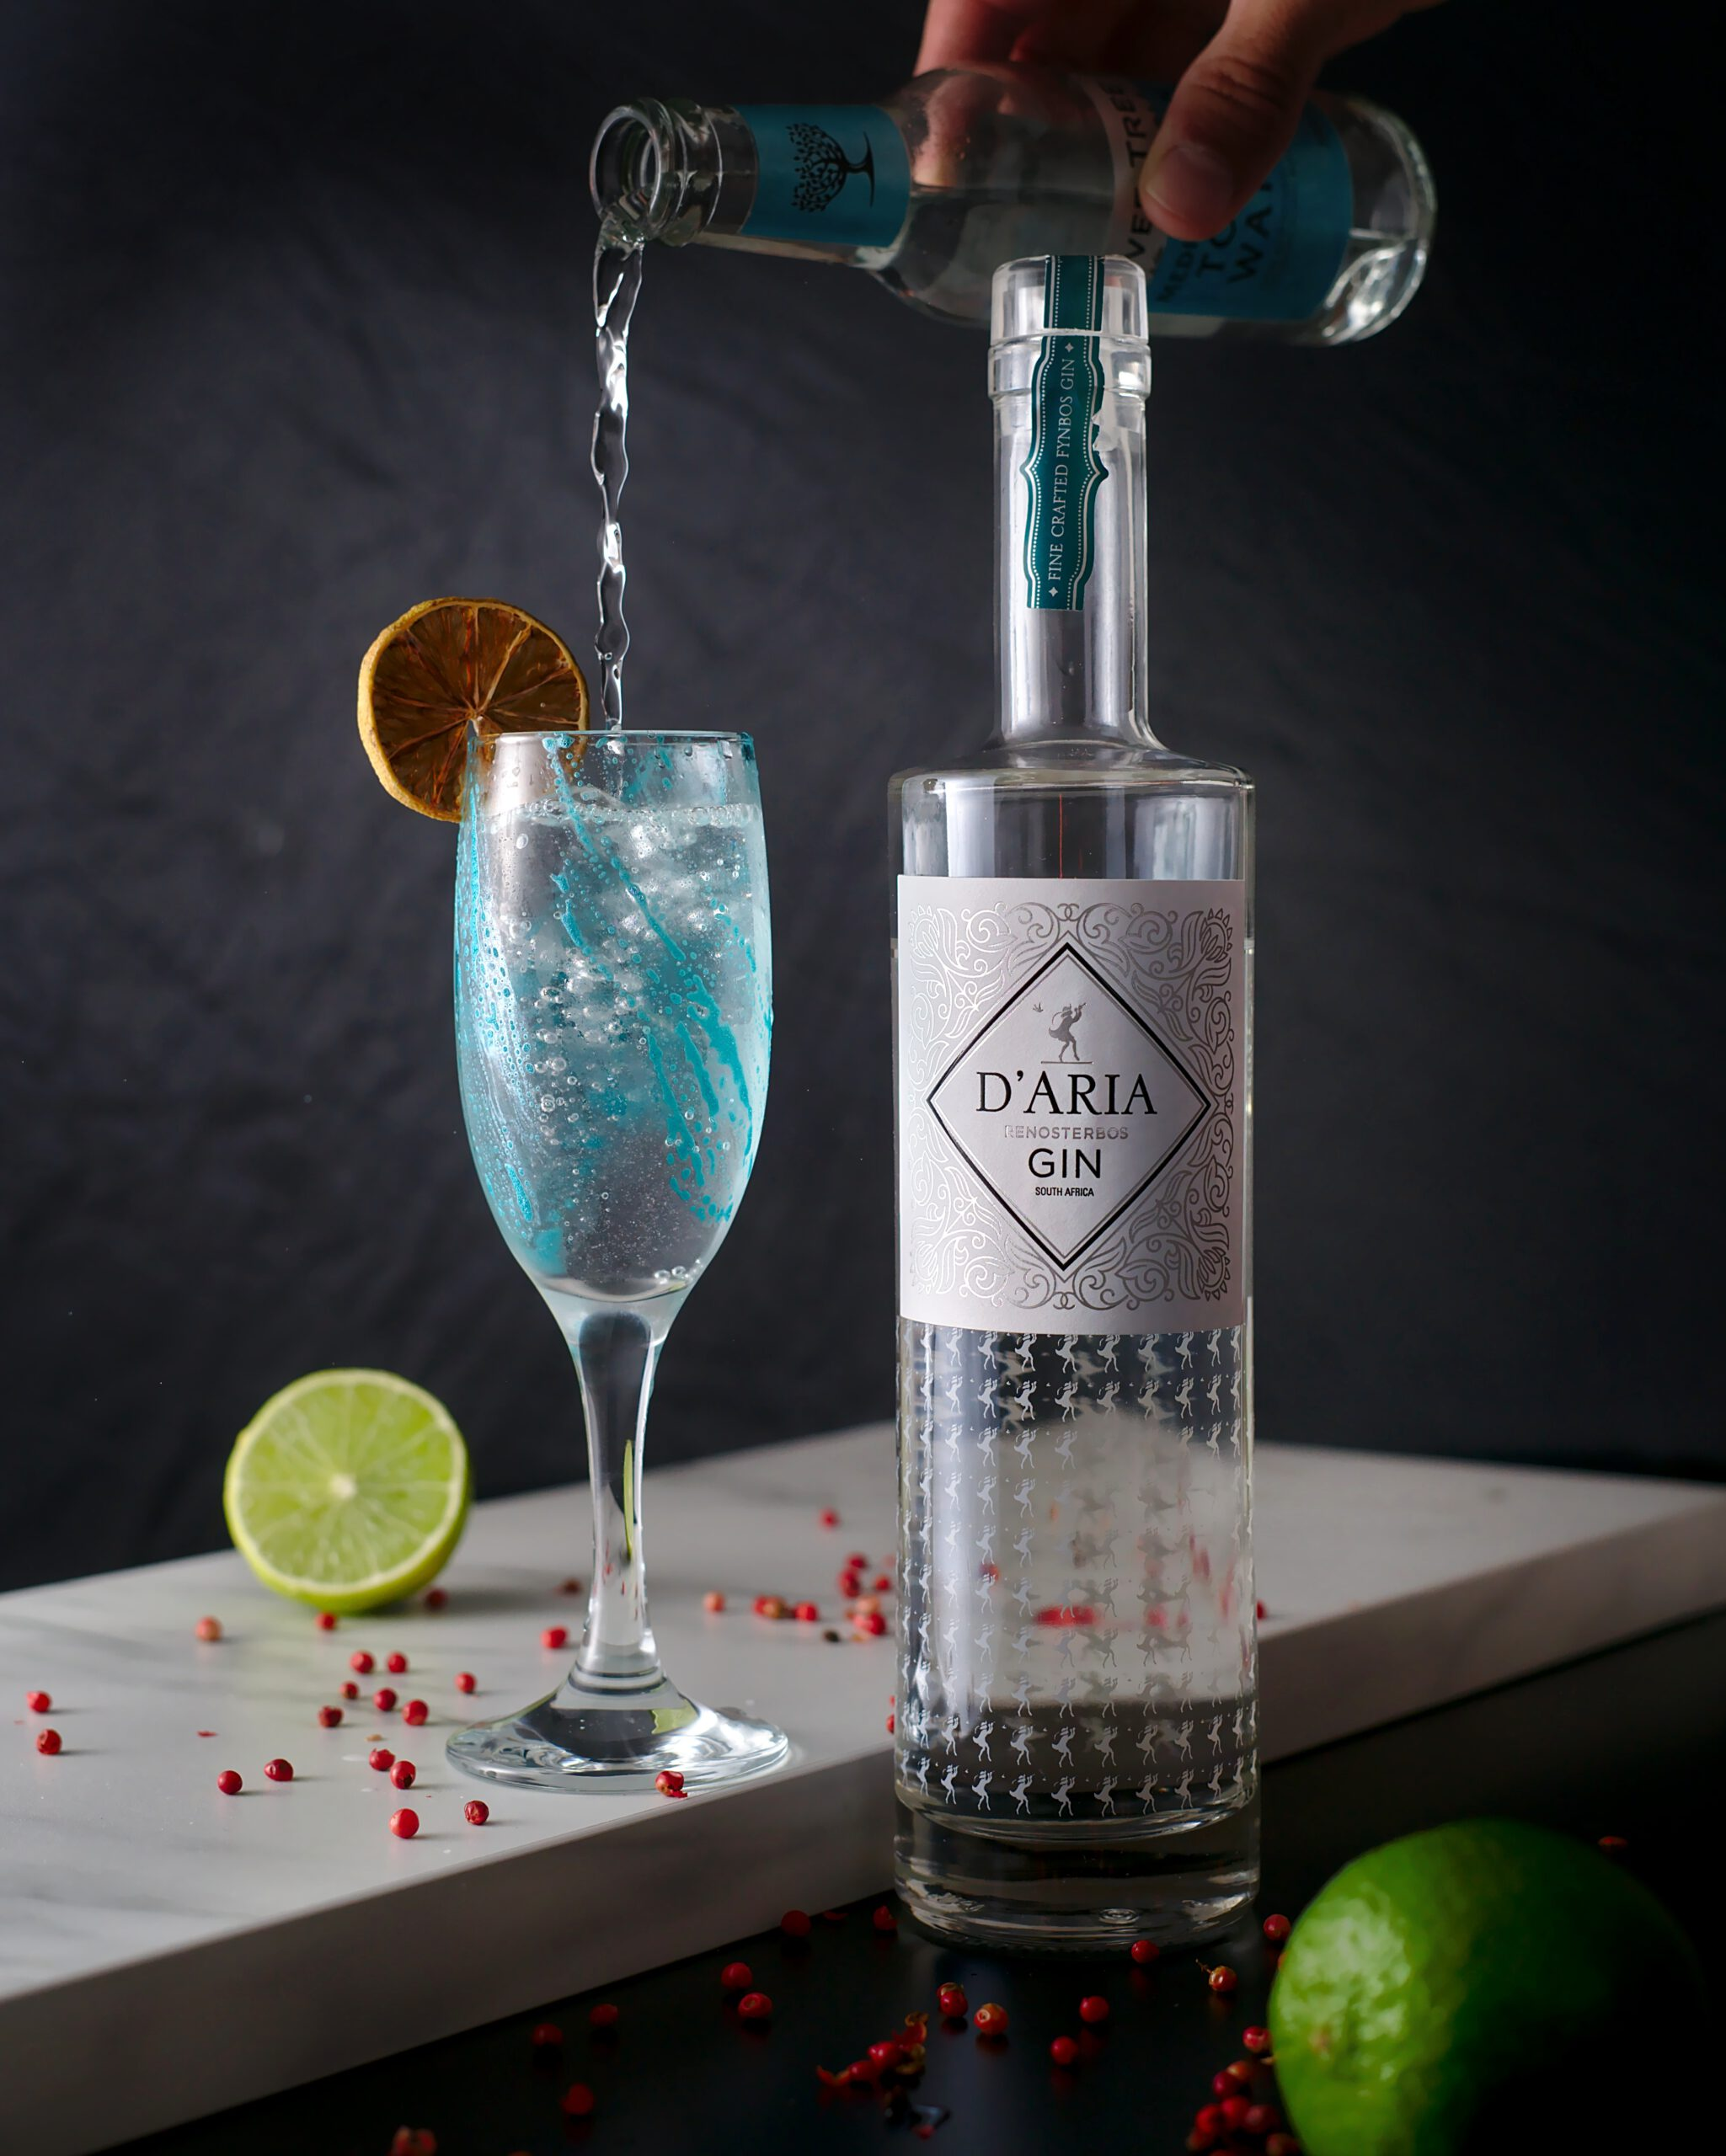 D'Aria Renosterbos Gin & Fever-Tree Med. Tonic